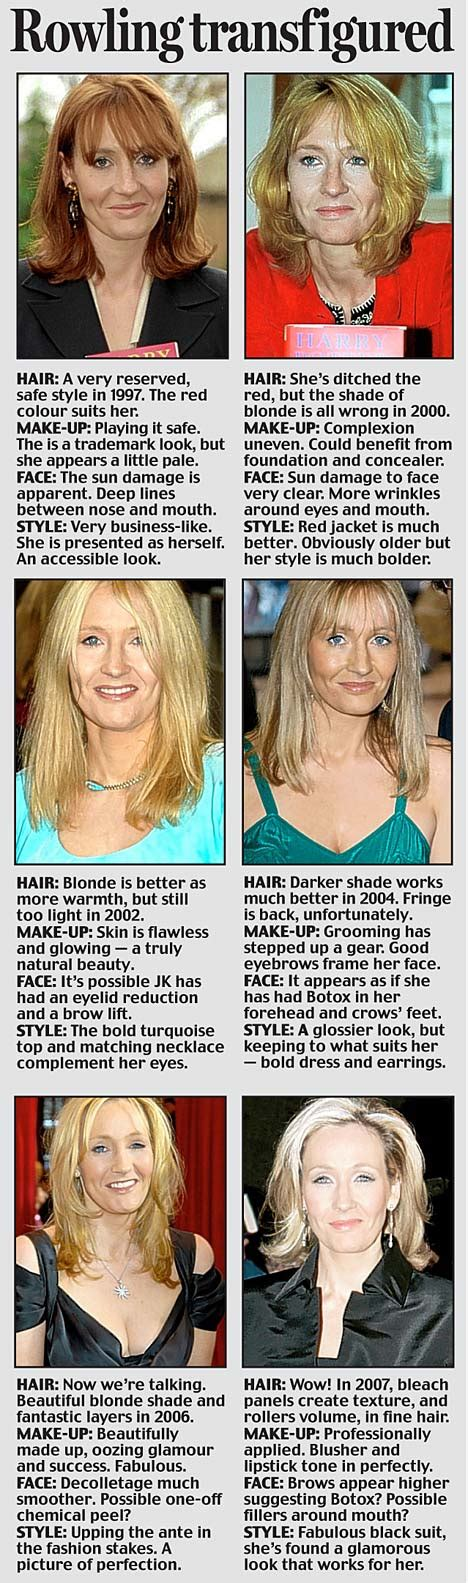 The secrets of JK Rowling's amazing makeover (and, yes, £